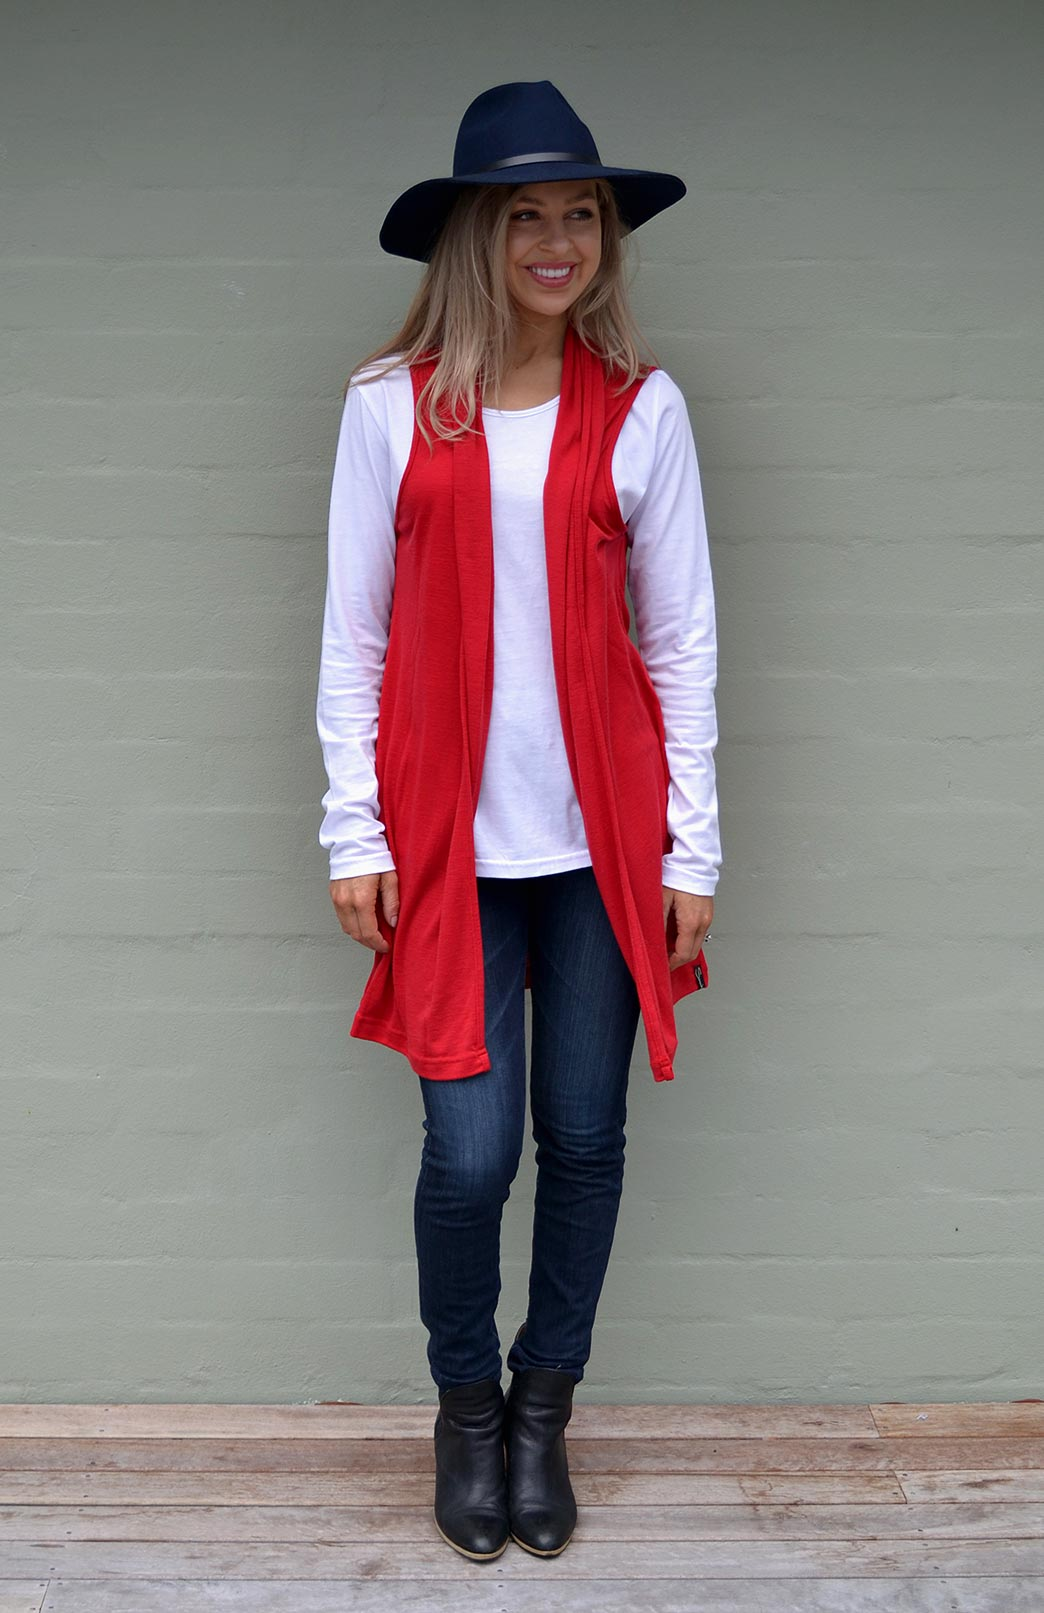 Sleeveless Drape Cardigan - Women's Flame Red Merino Wool Sleeveless Drape Cardigan with no buttons or fastenings - Smitten Merino Tasmania Australia